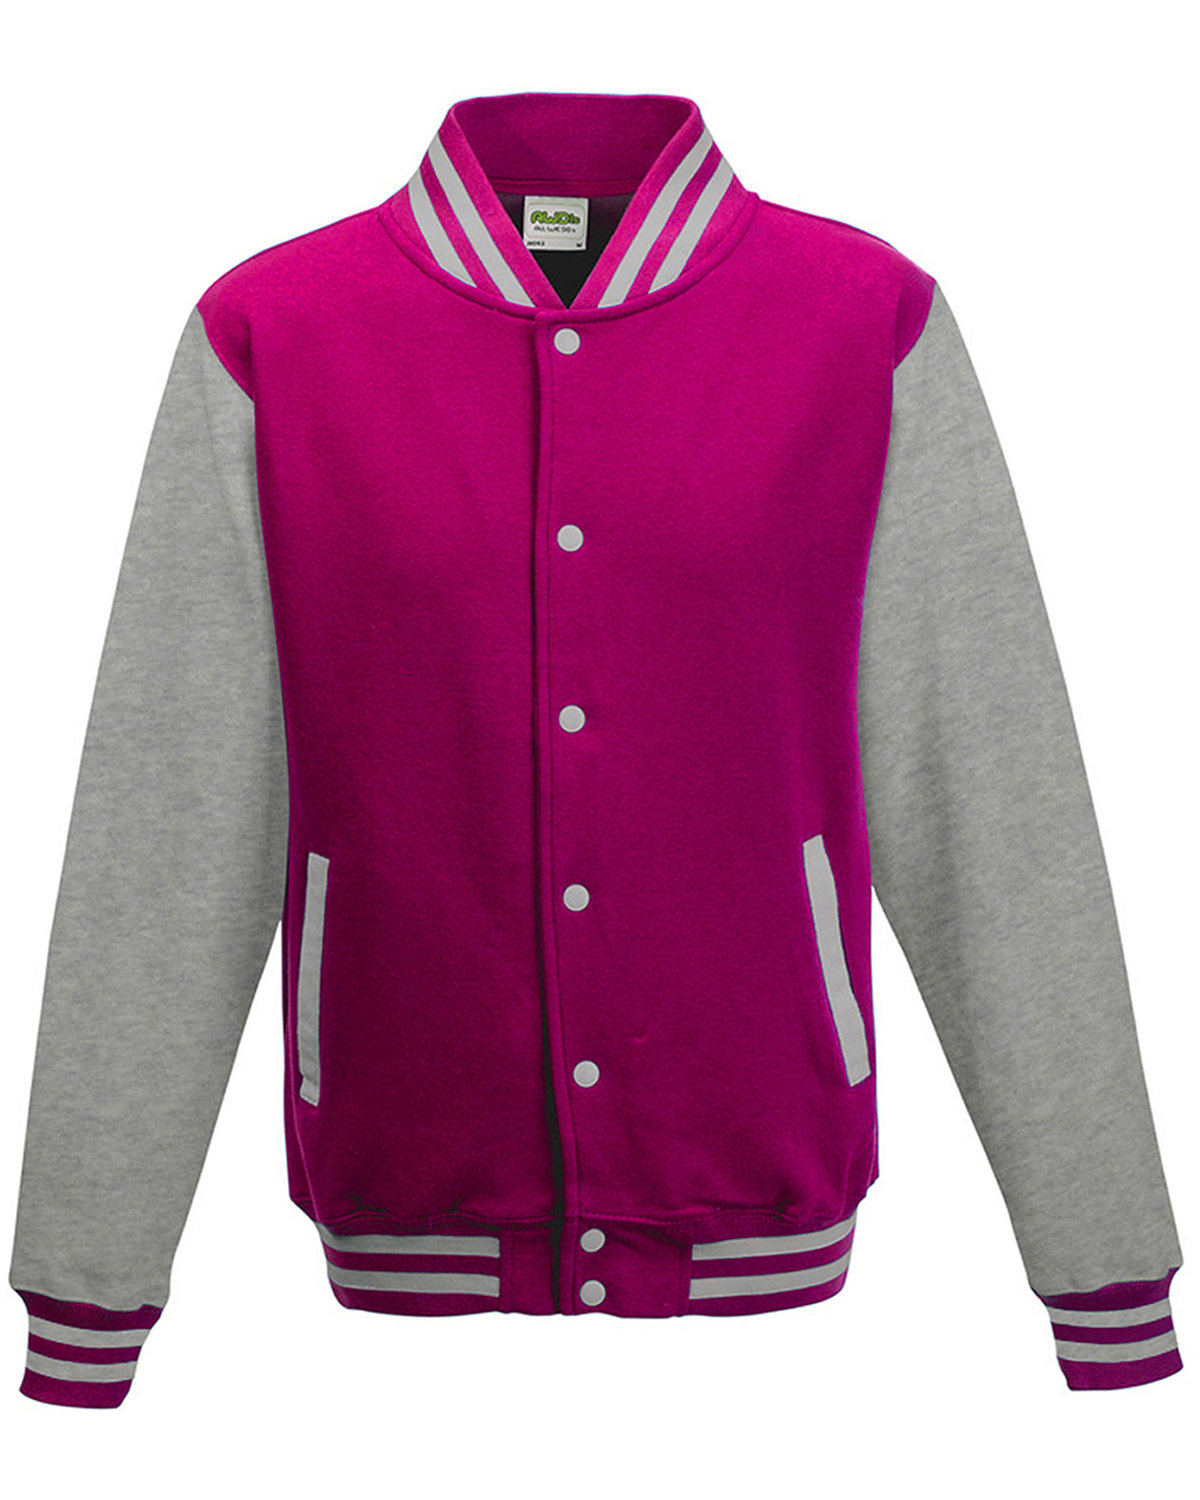 Just Hoods By AWDis Men's 80/20 Heavyweight Letterman Jacket HOT PNK/ HTH GRY